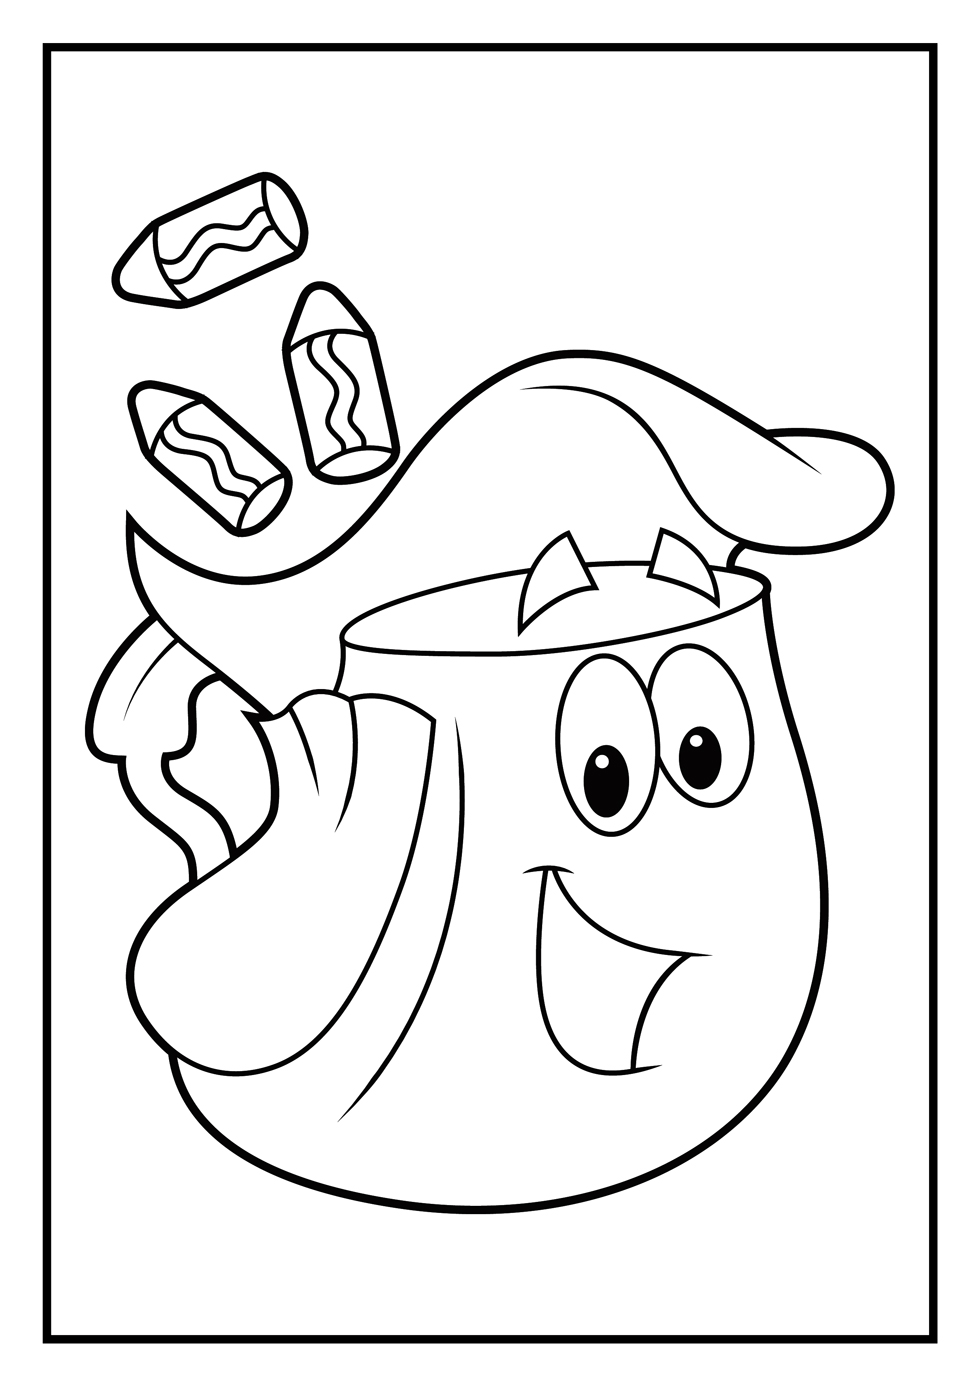 diego coloring pages scientific adventures of diego 20 diego coloring pages diego pages coloring